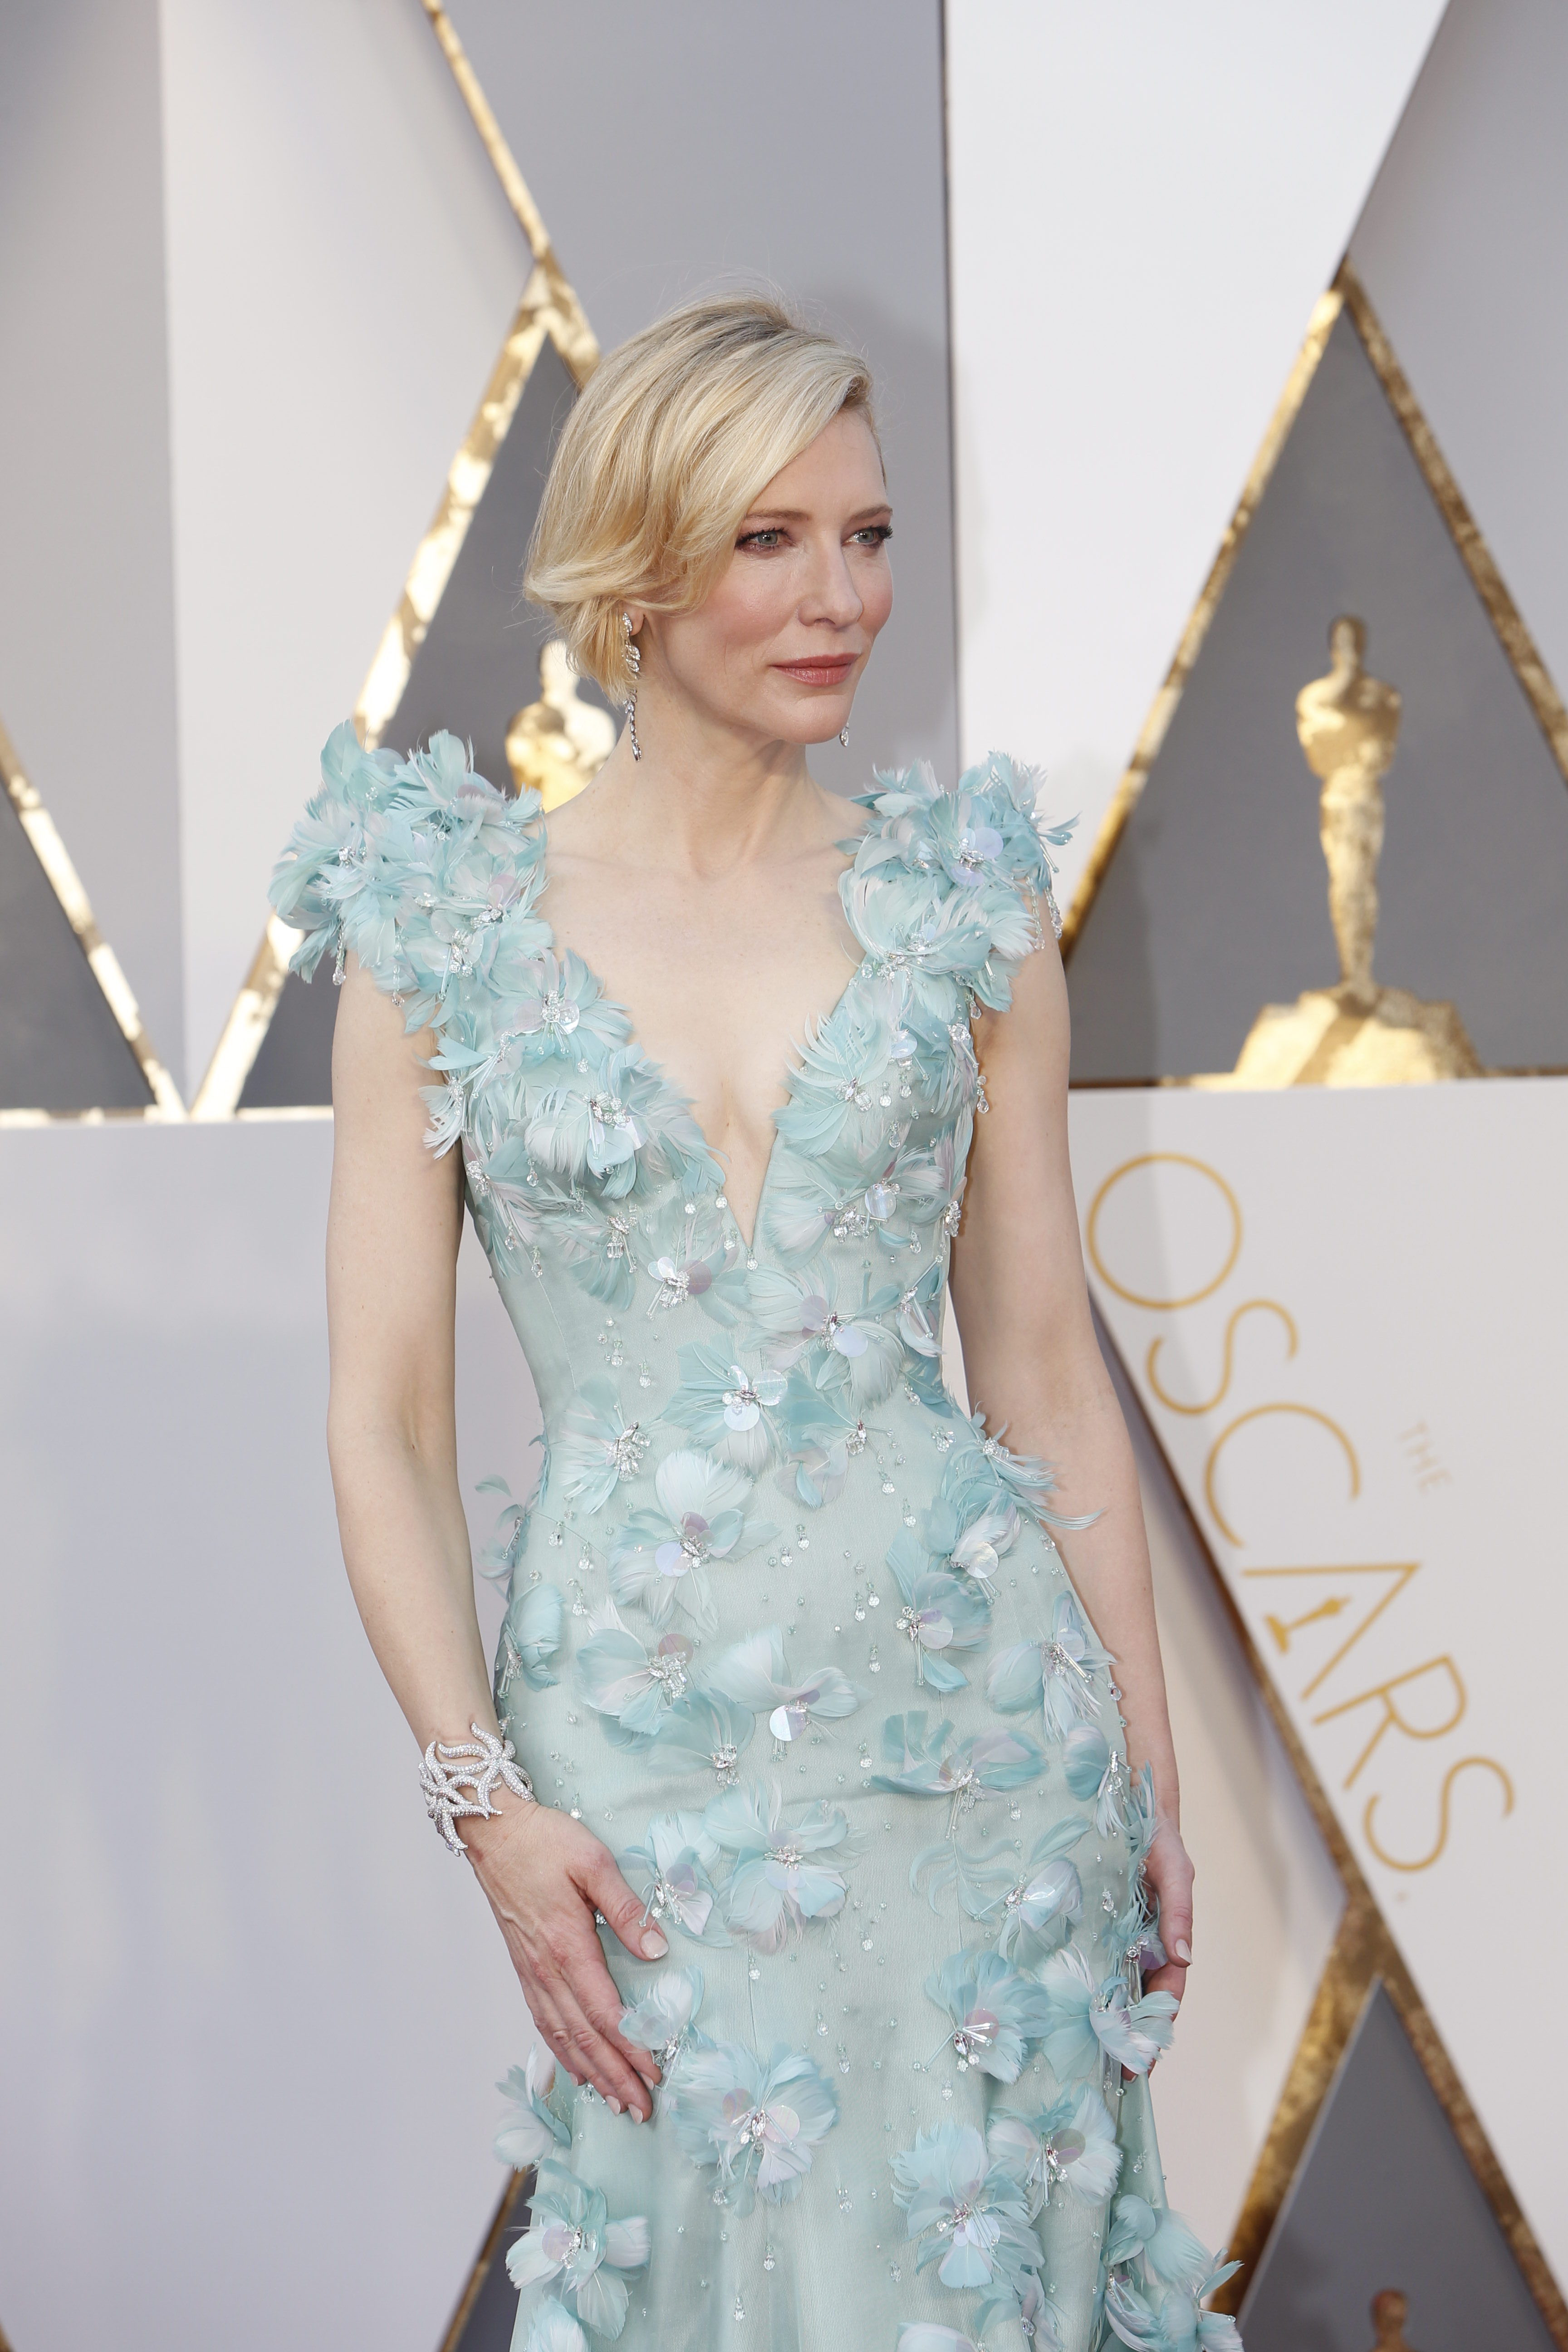 Cate Blanchett at the 88th Academy Awards.